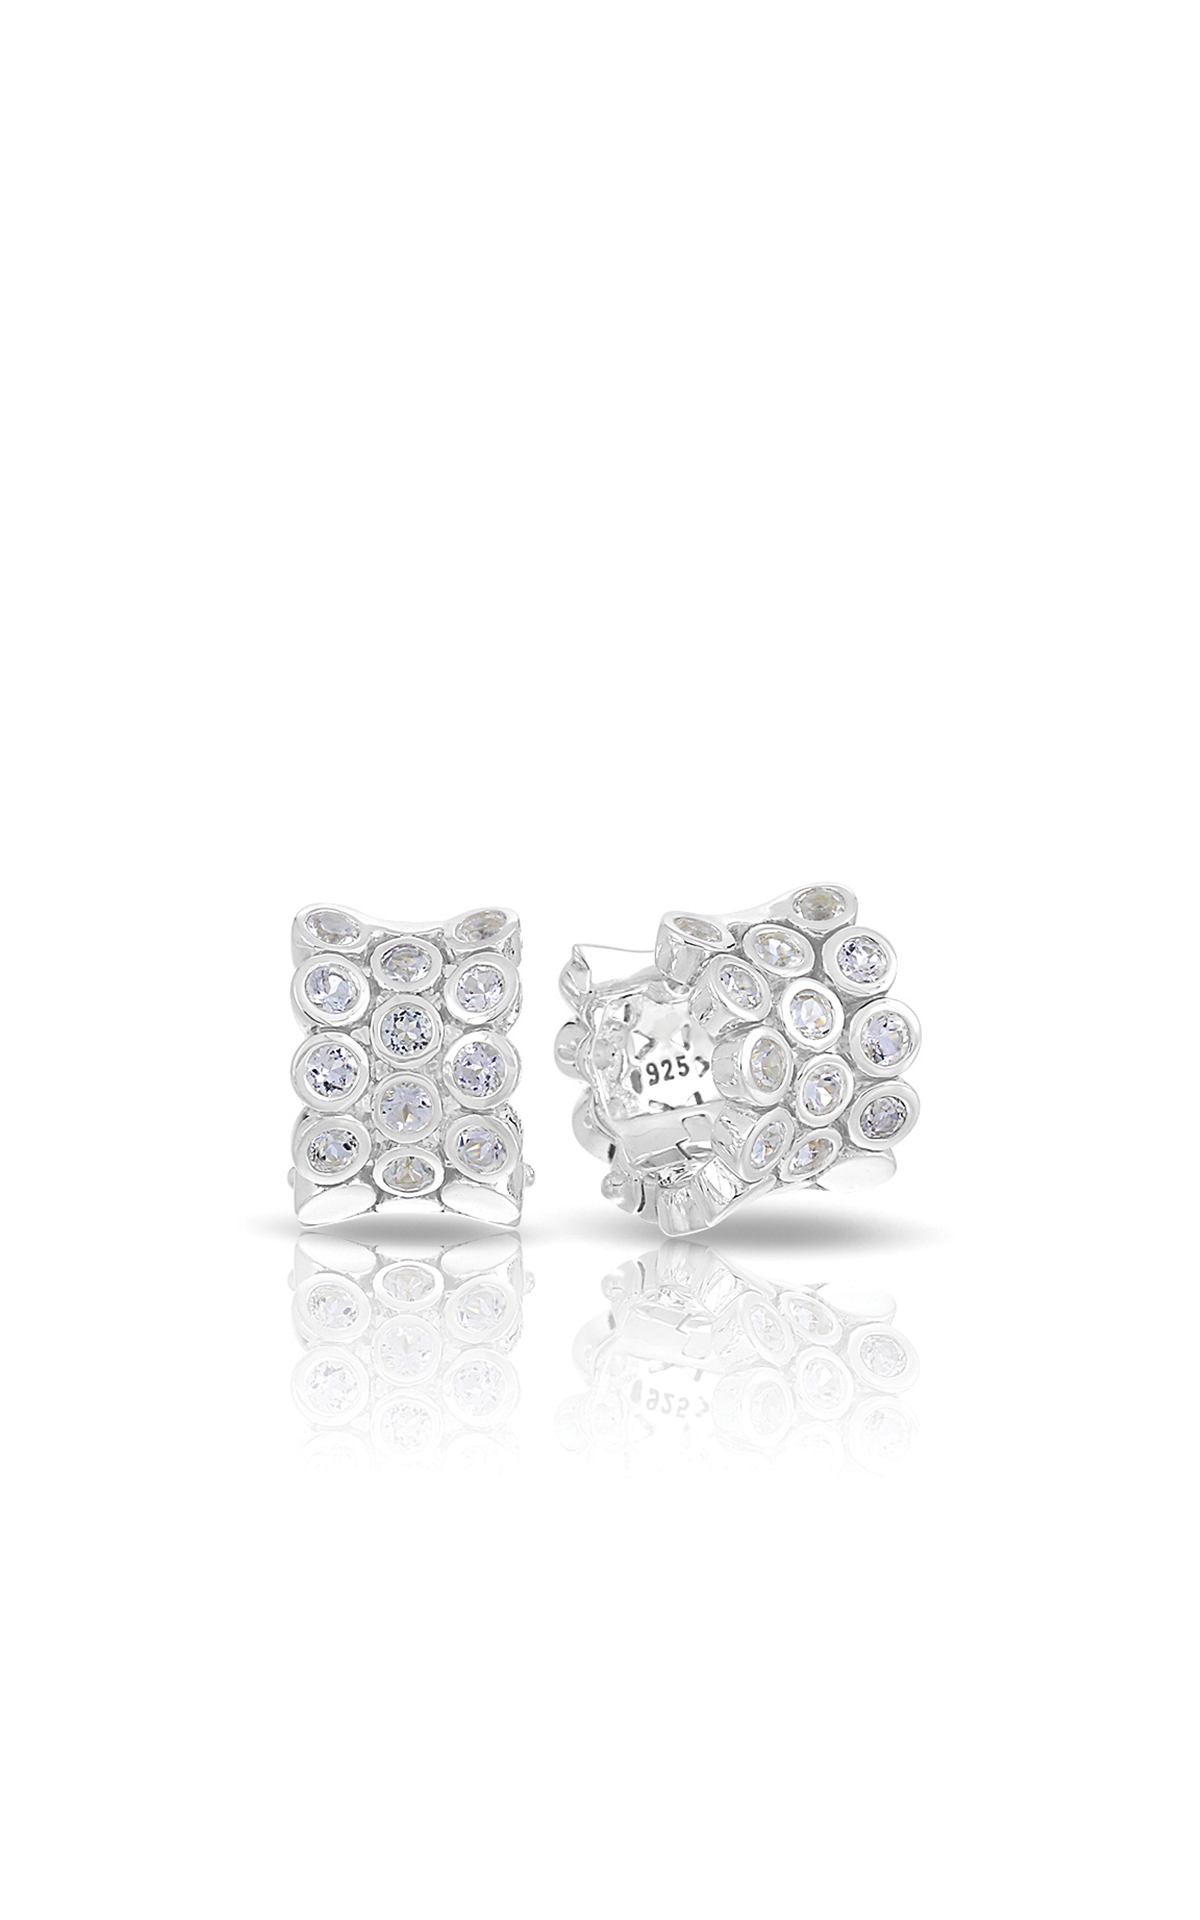 Belle Etoile Color Stone Shimmer Silver Earrings 3011720201 product image